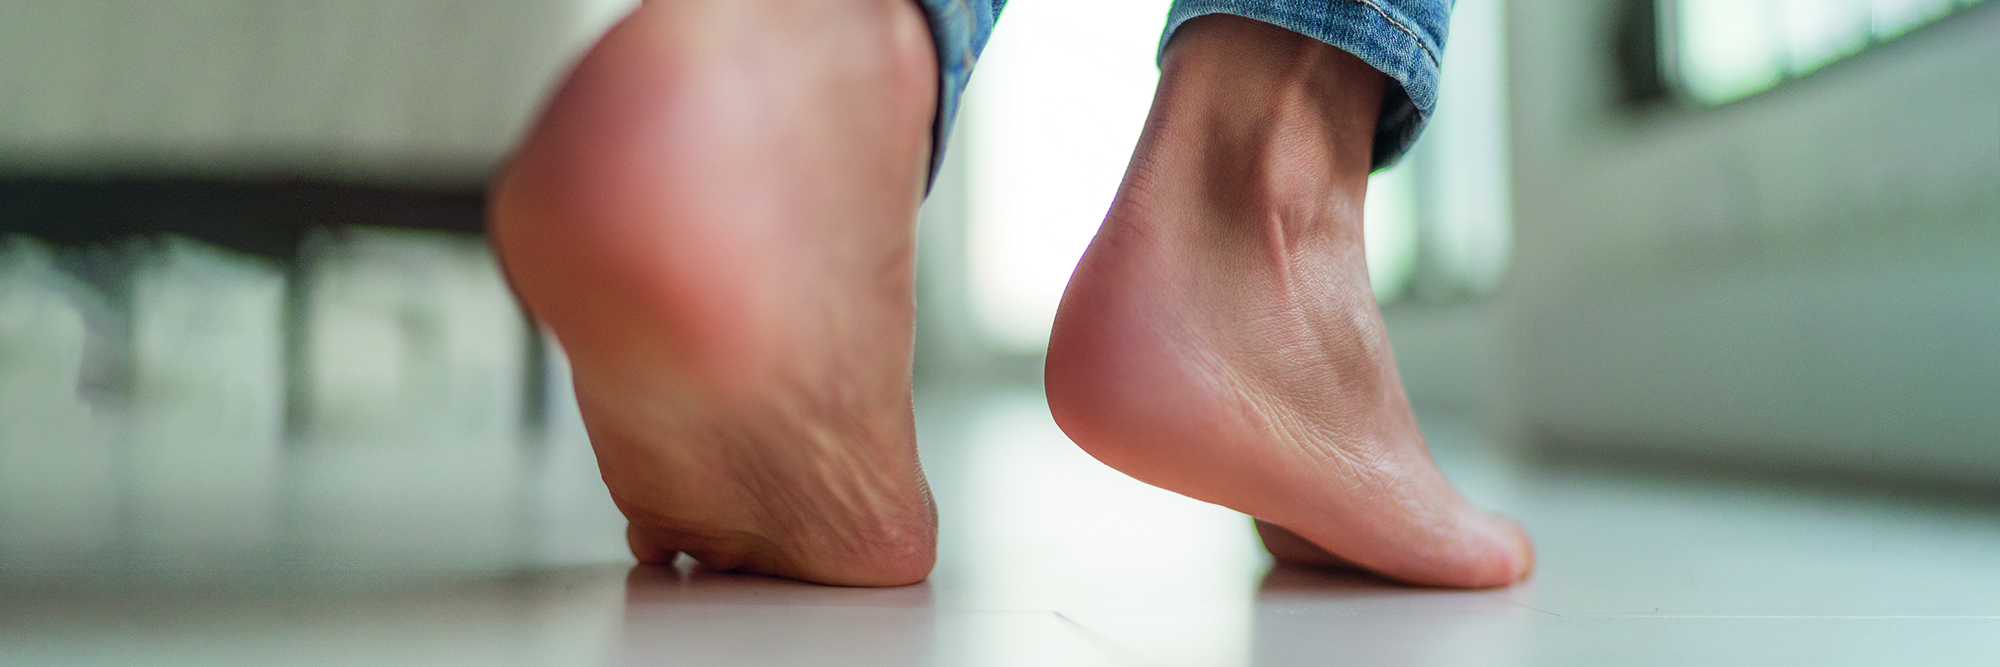 Barefoot feet walking on heated floors at home - Comfort lifestyle healthy foot care for cracked skin heels woman legs banner panorama.